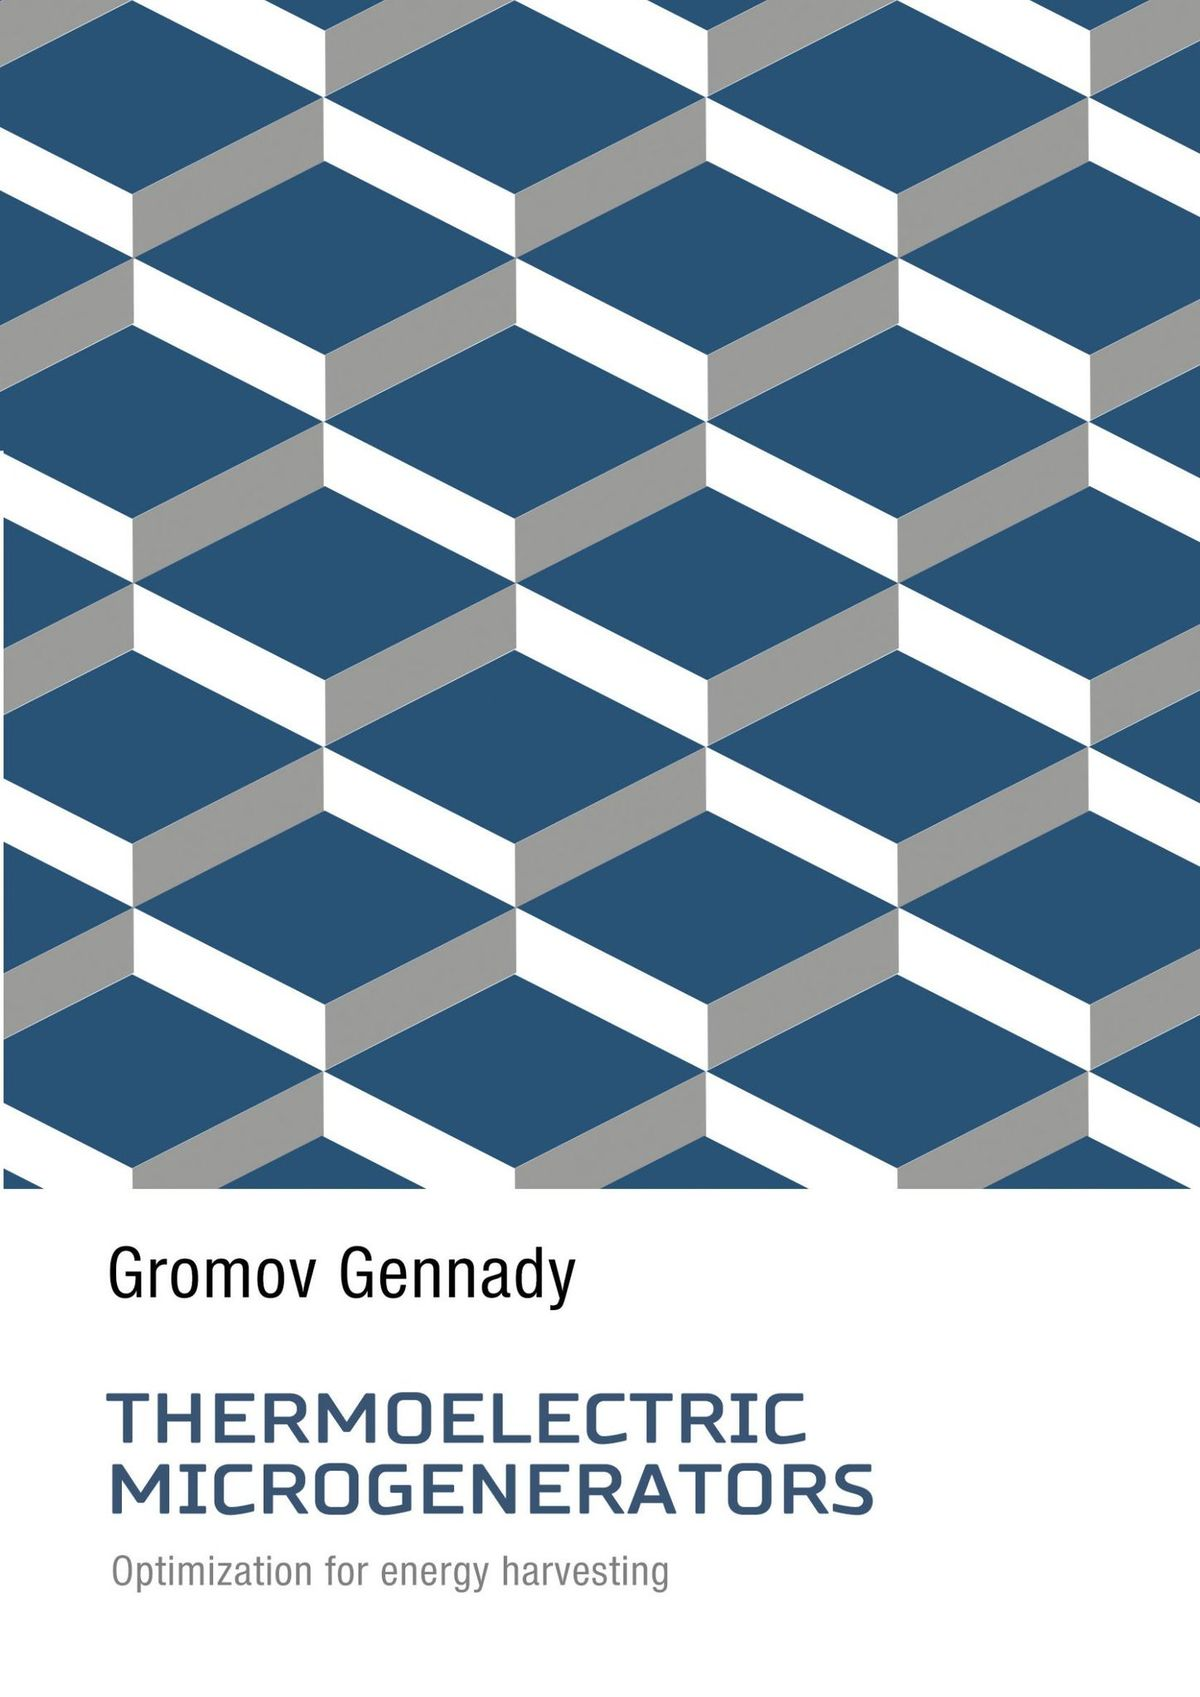 Thermoelectric Microgenerators. Optimization for energy harvesting